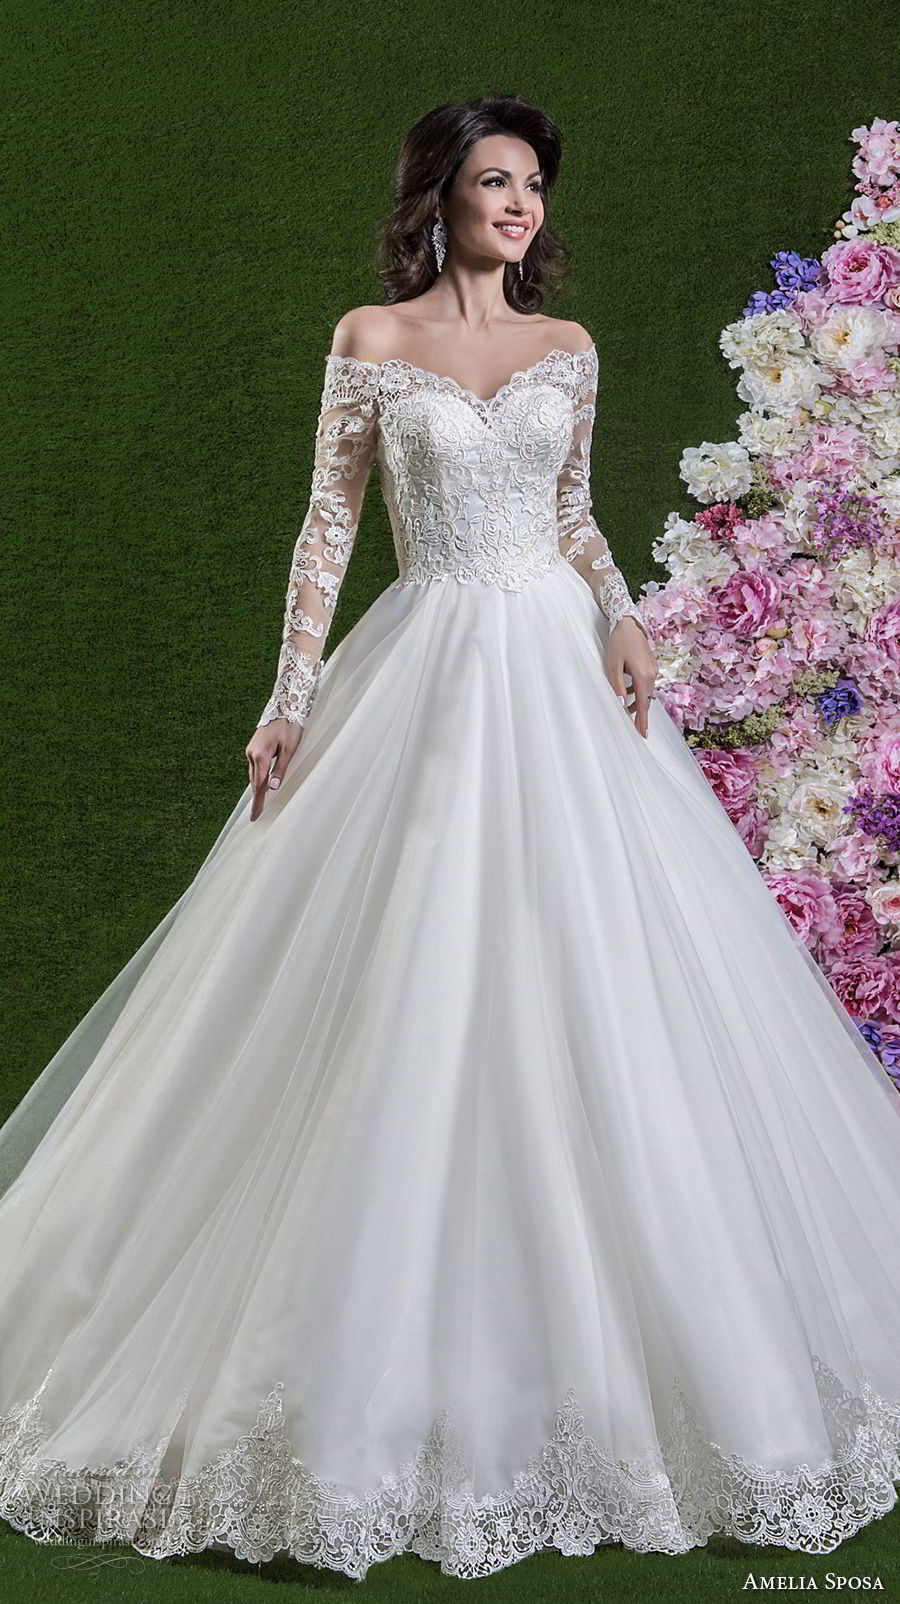 amelia sposa 2018 bridal long sleeves off the shoulder sweetheart neckline heavily embellished bodice romantic elegant a line wedding dress covered lace back chapel train (dolores) mv